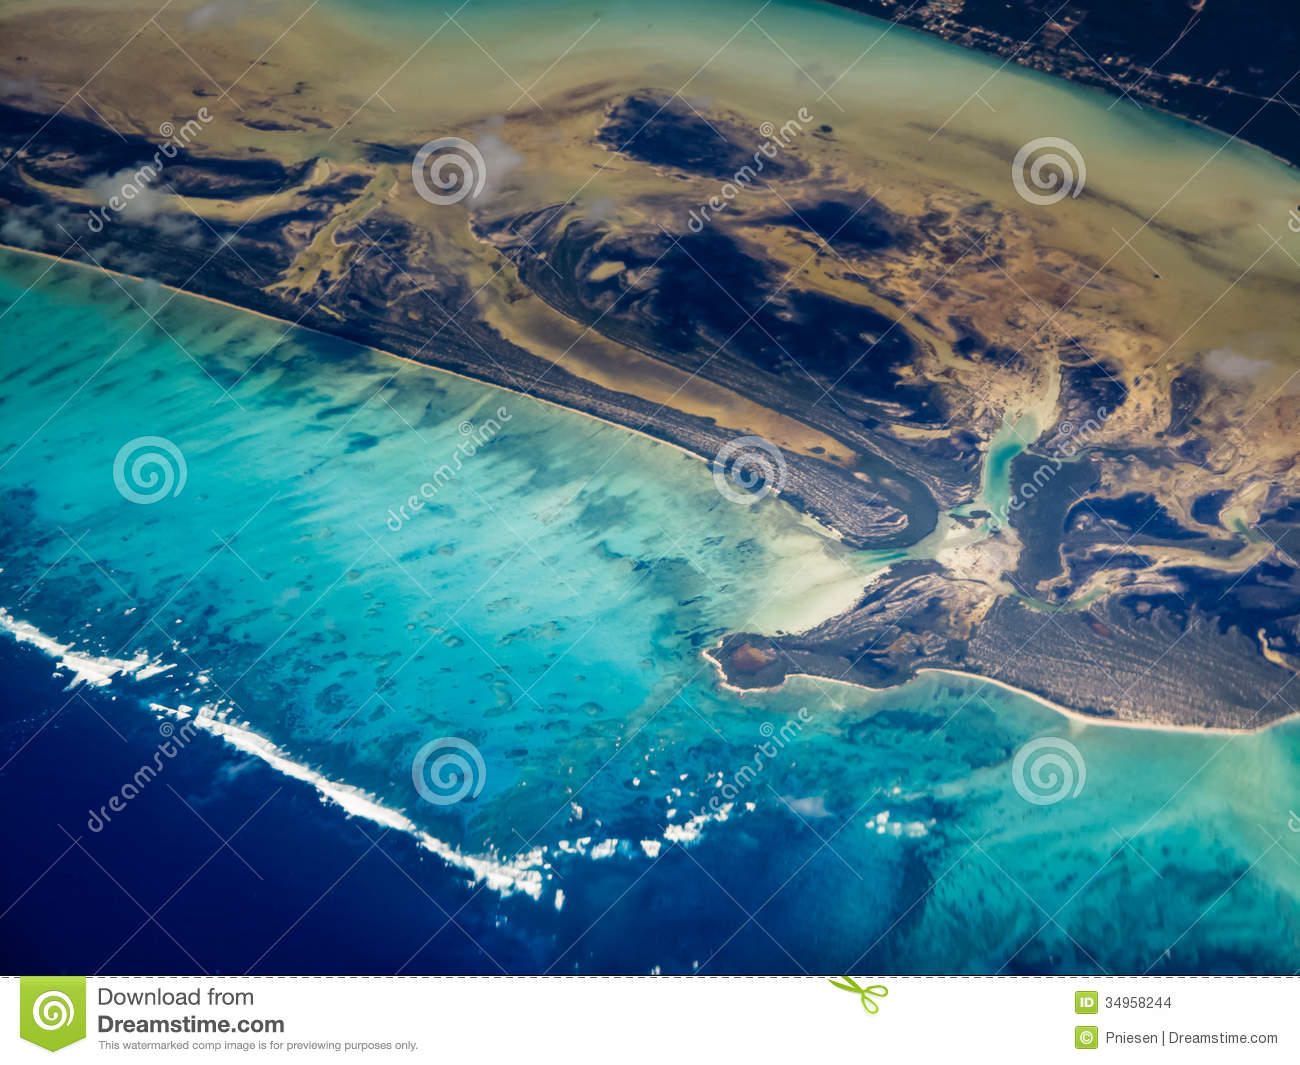 Swirling pattern Aerial view of Caribbean islands